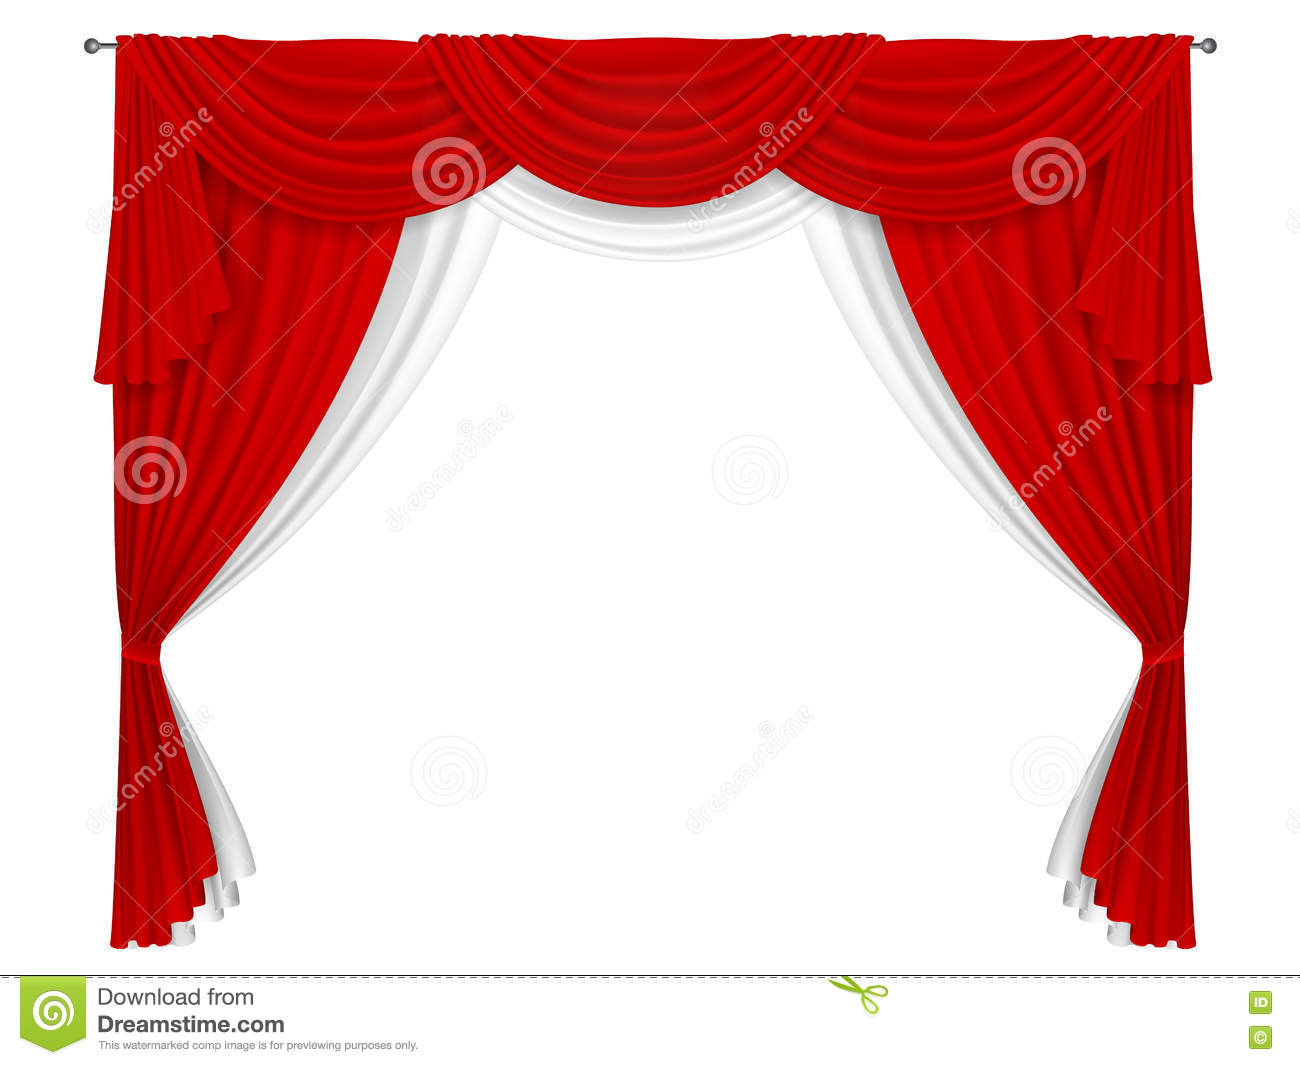 classic red and white curtain stock vector image 71756587. Black Bedroom Furniture Sets. Home Design Ideas